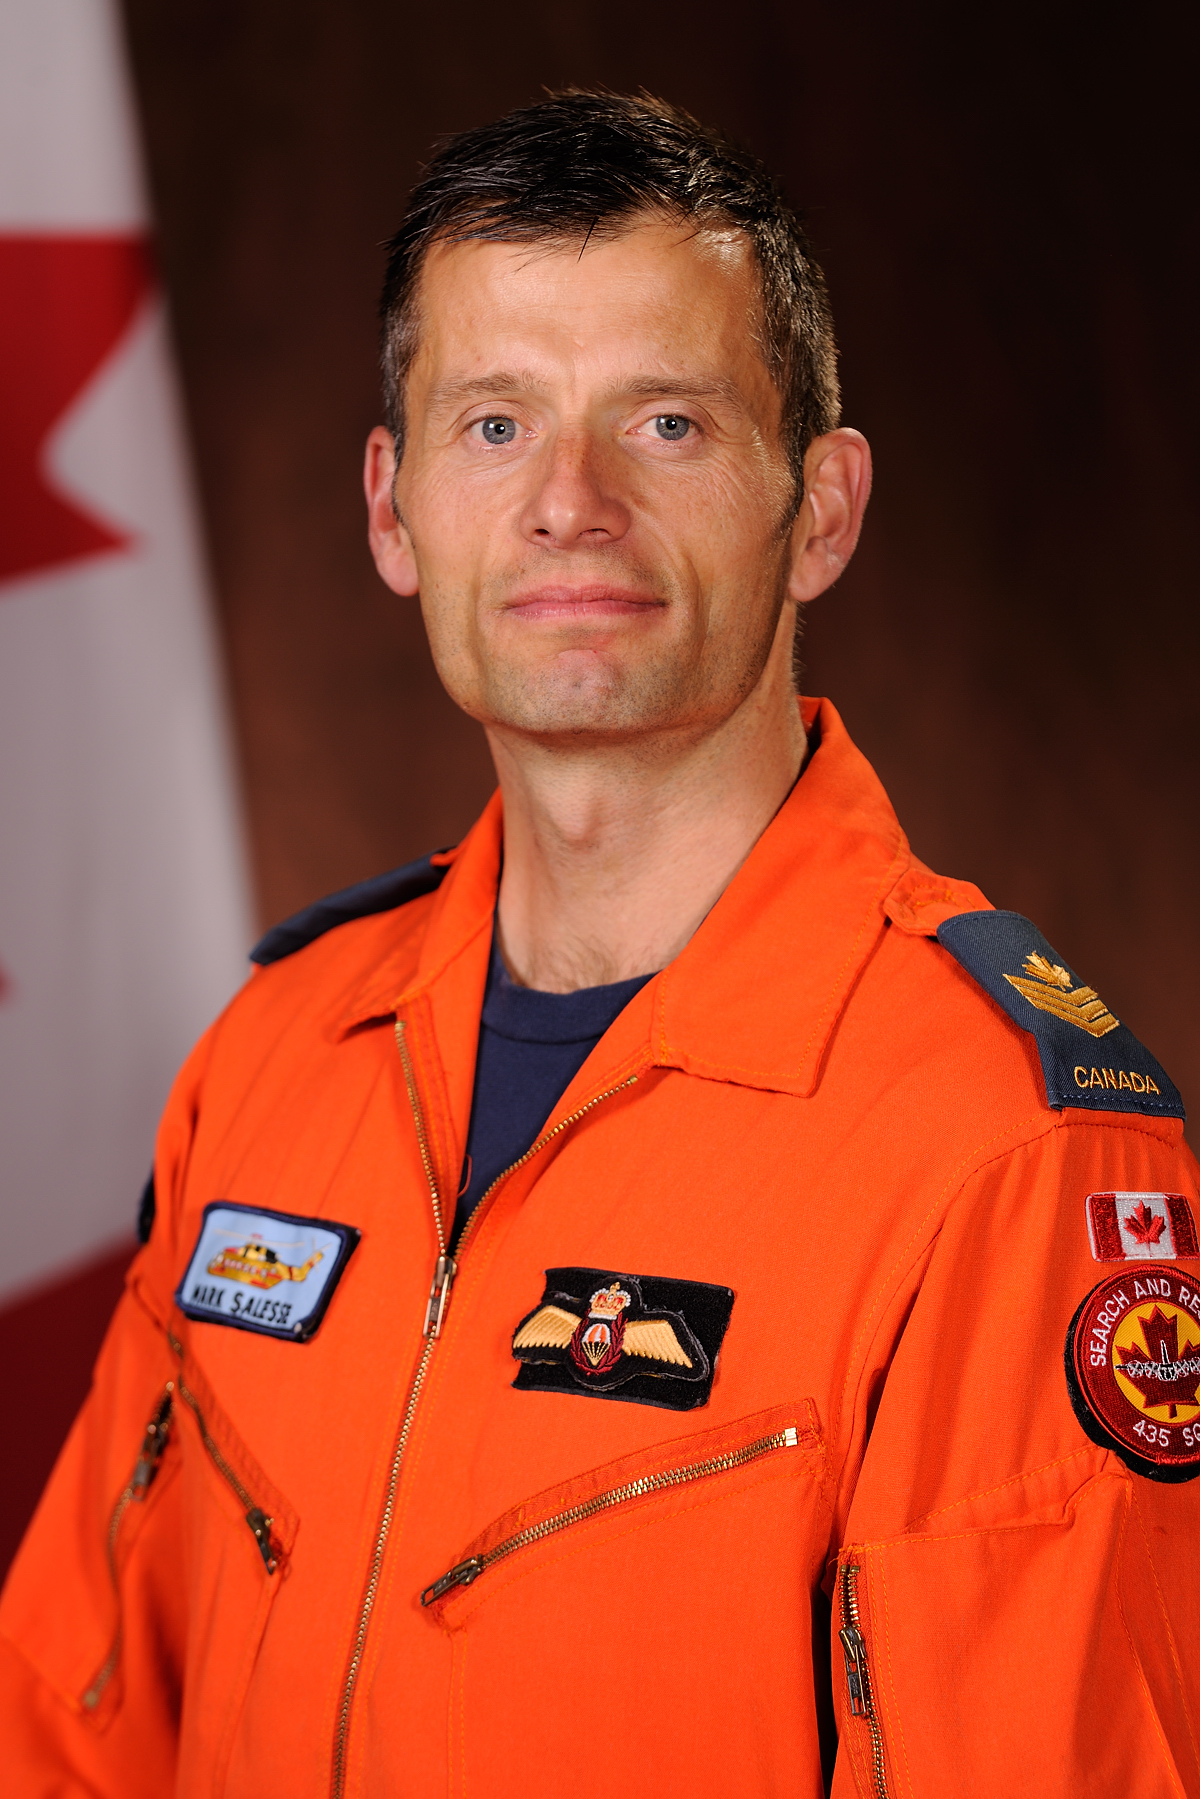 Sergeant Mark Salesse. PHOTO: DND